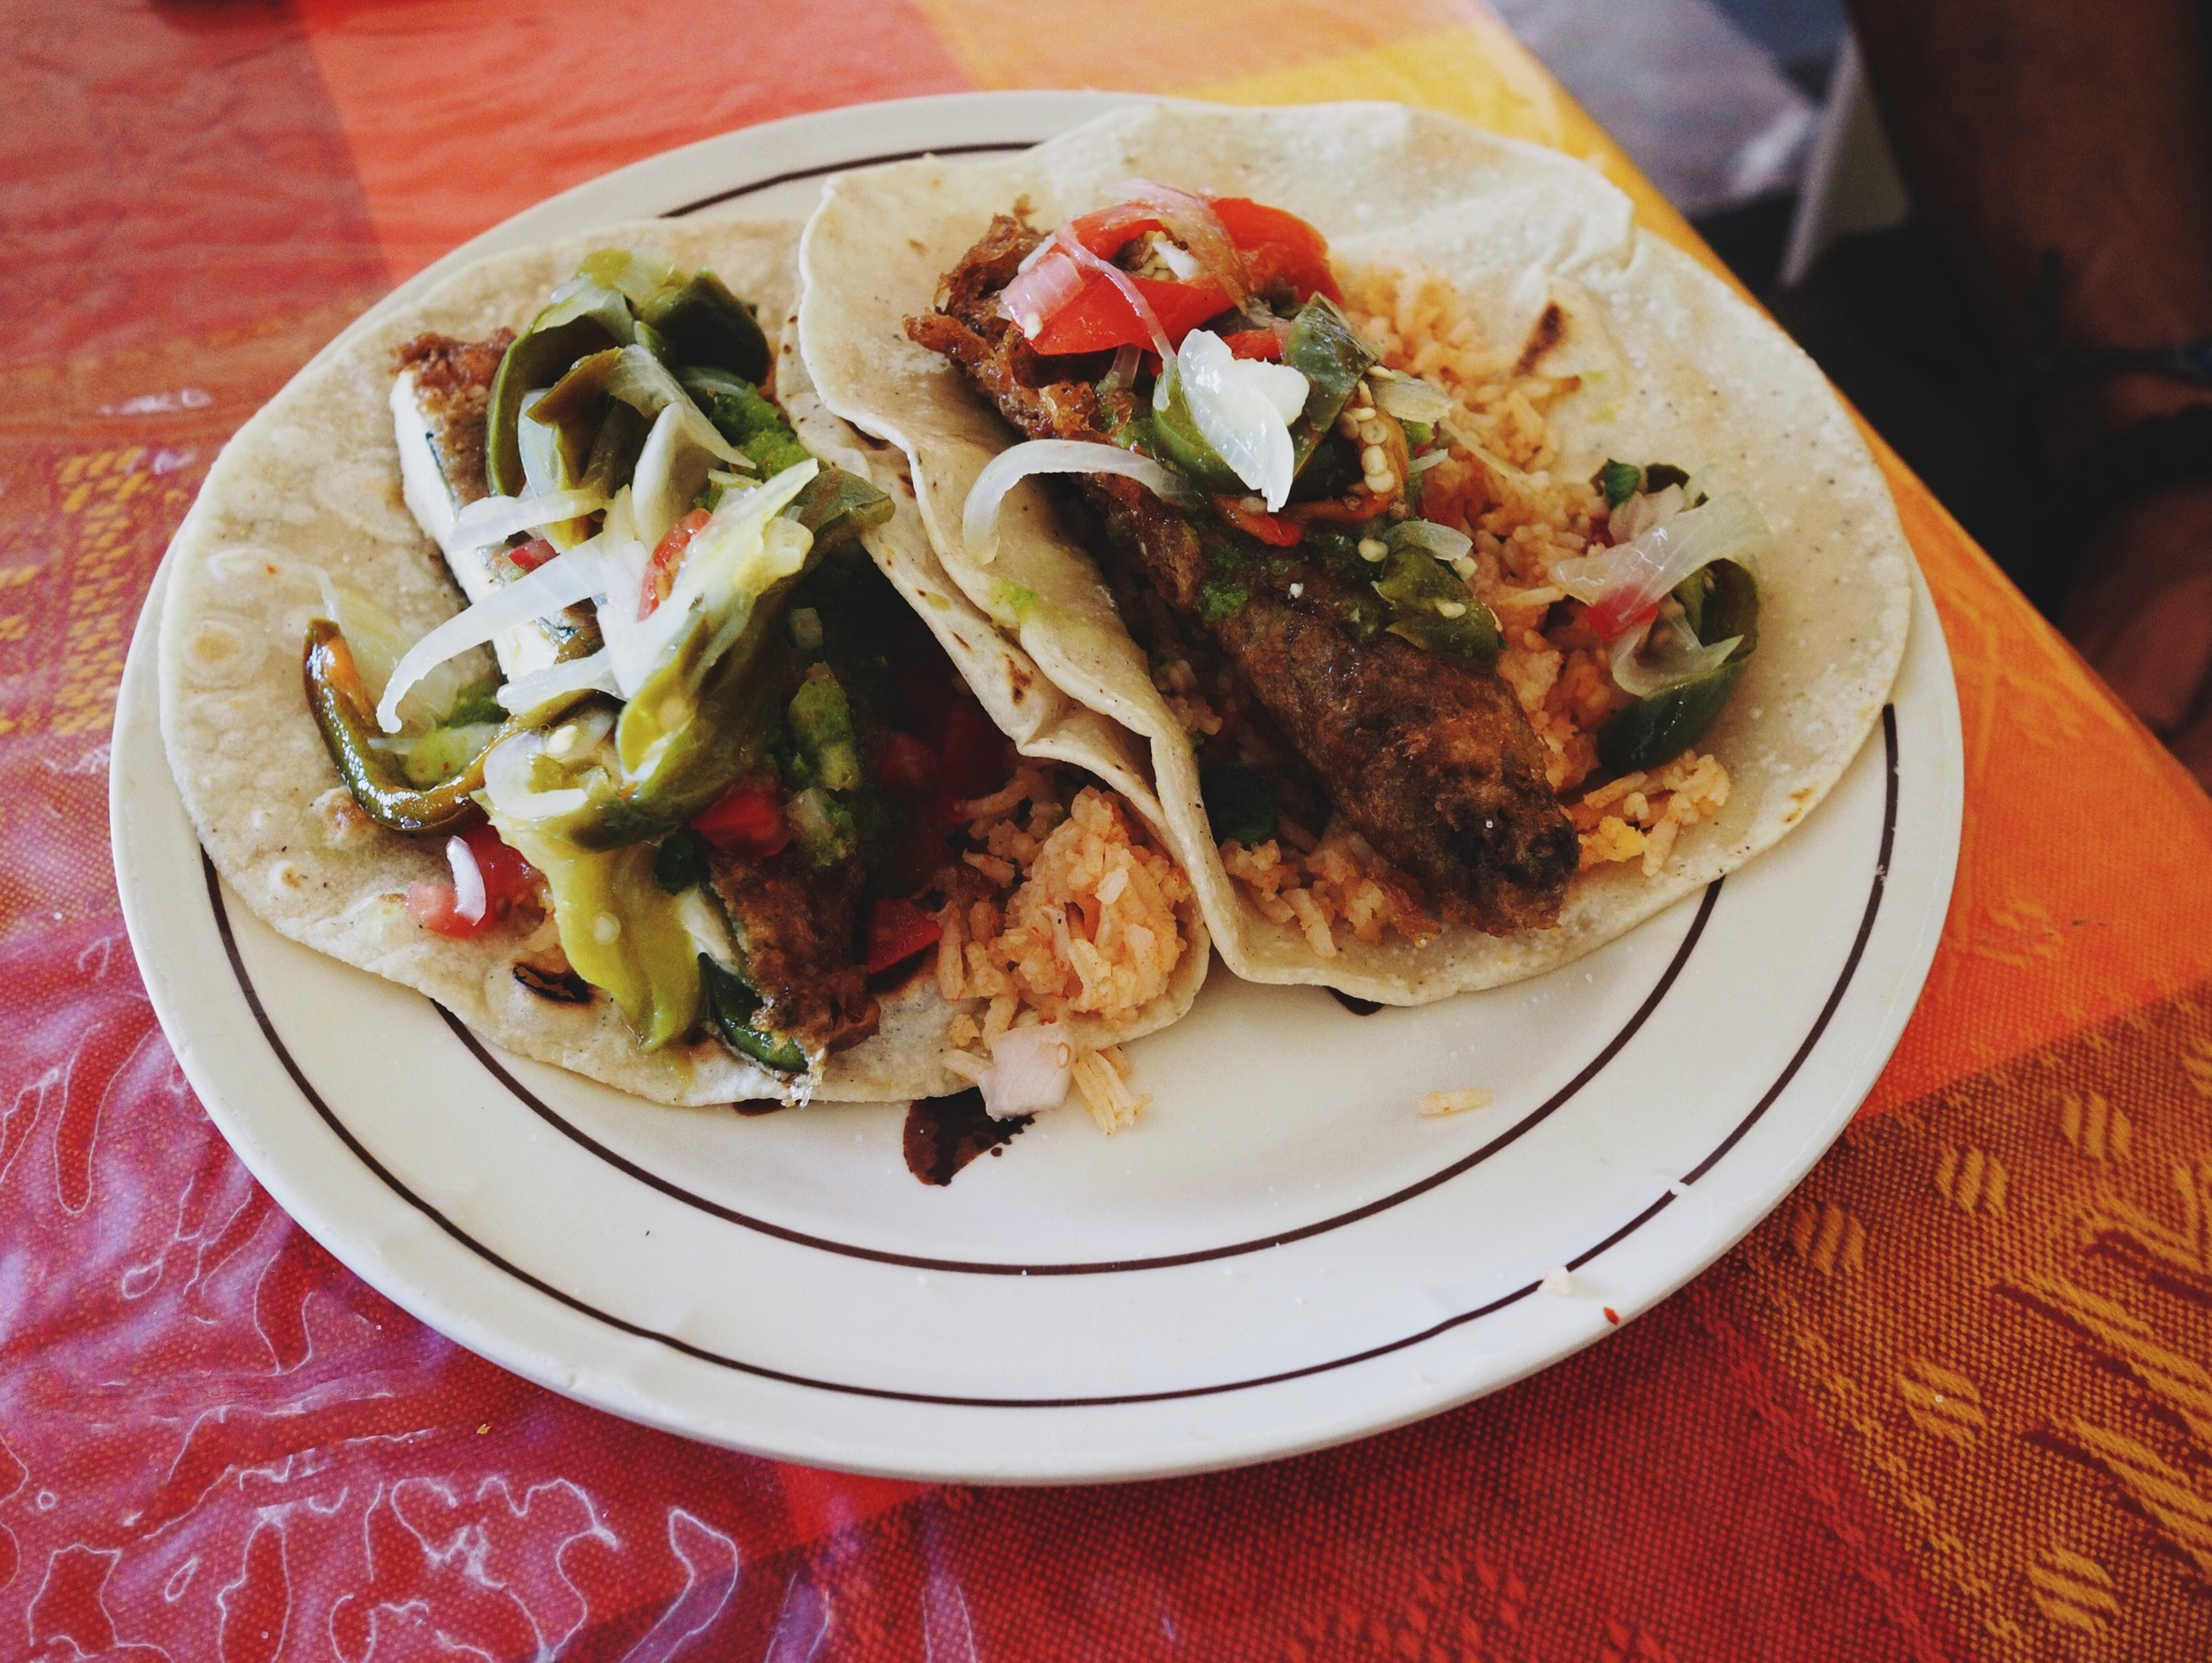 Chile rellenos tacos with all the fixings: guacamole, rice, rajas, salsa and queso fresco